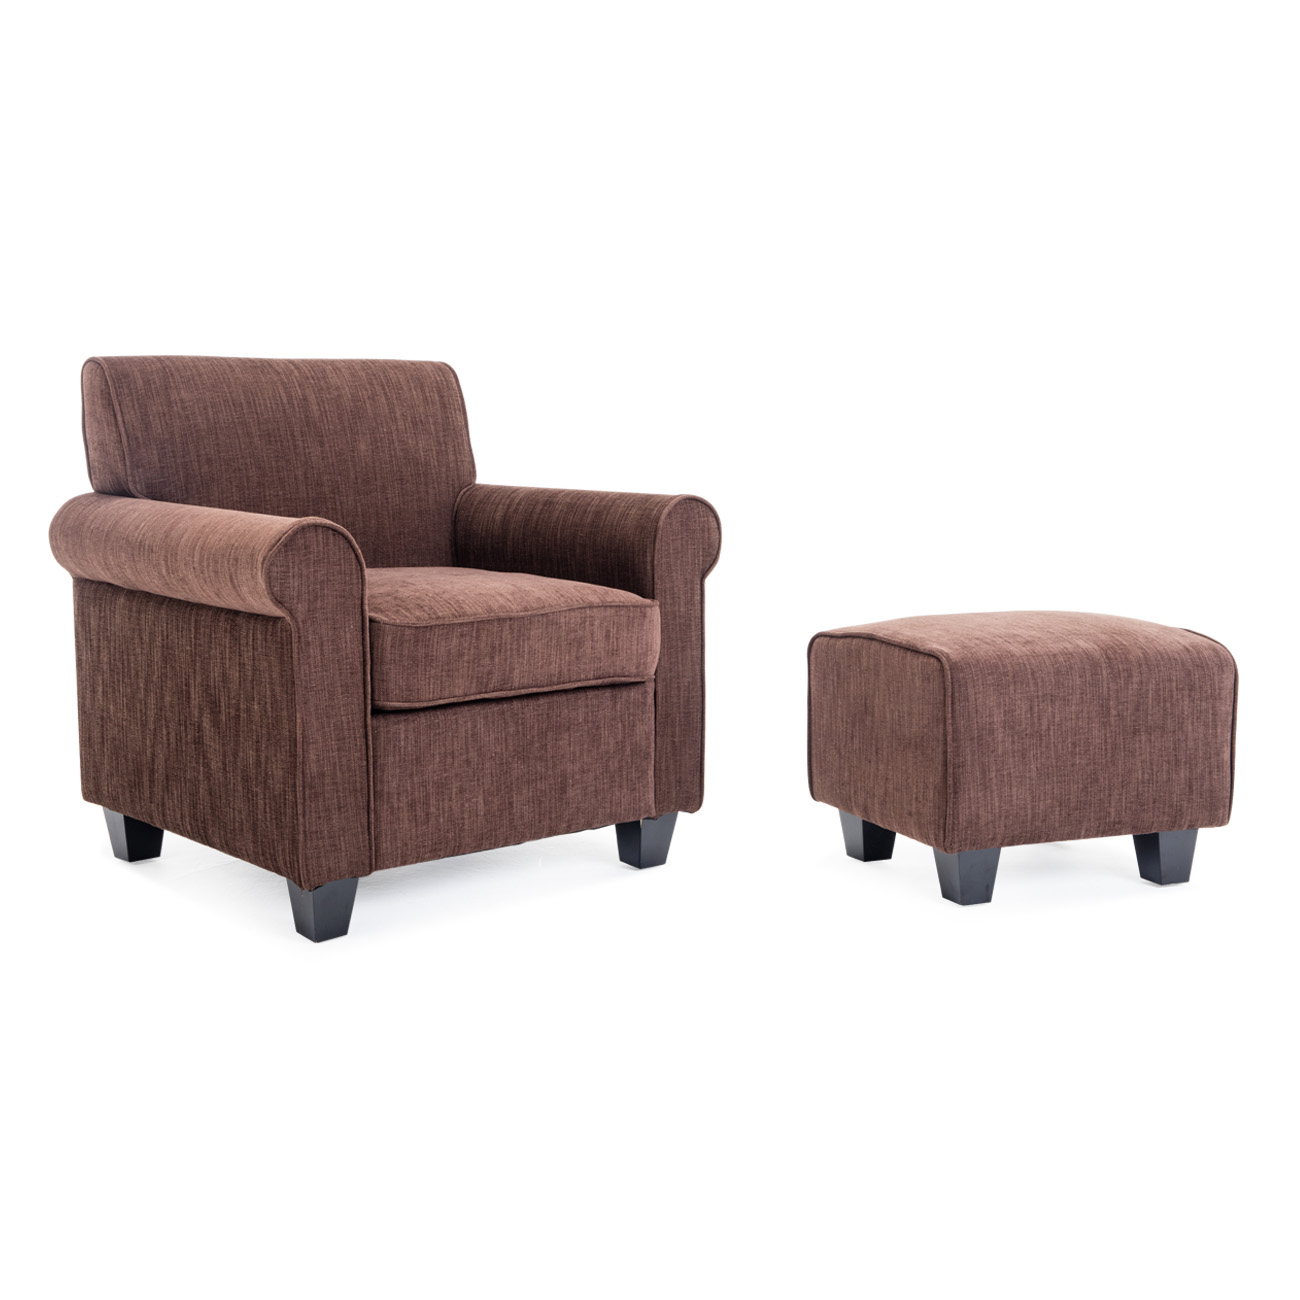 Audrey Accented Retro Chair Ottoman Upholstered Foam Cushions Wood Legs  Brown